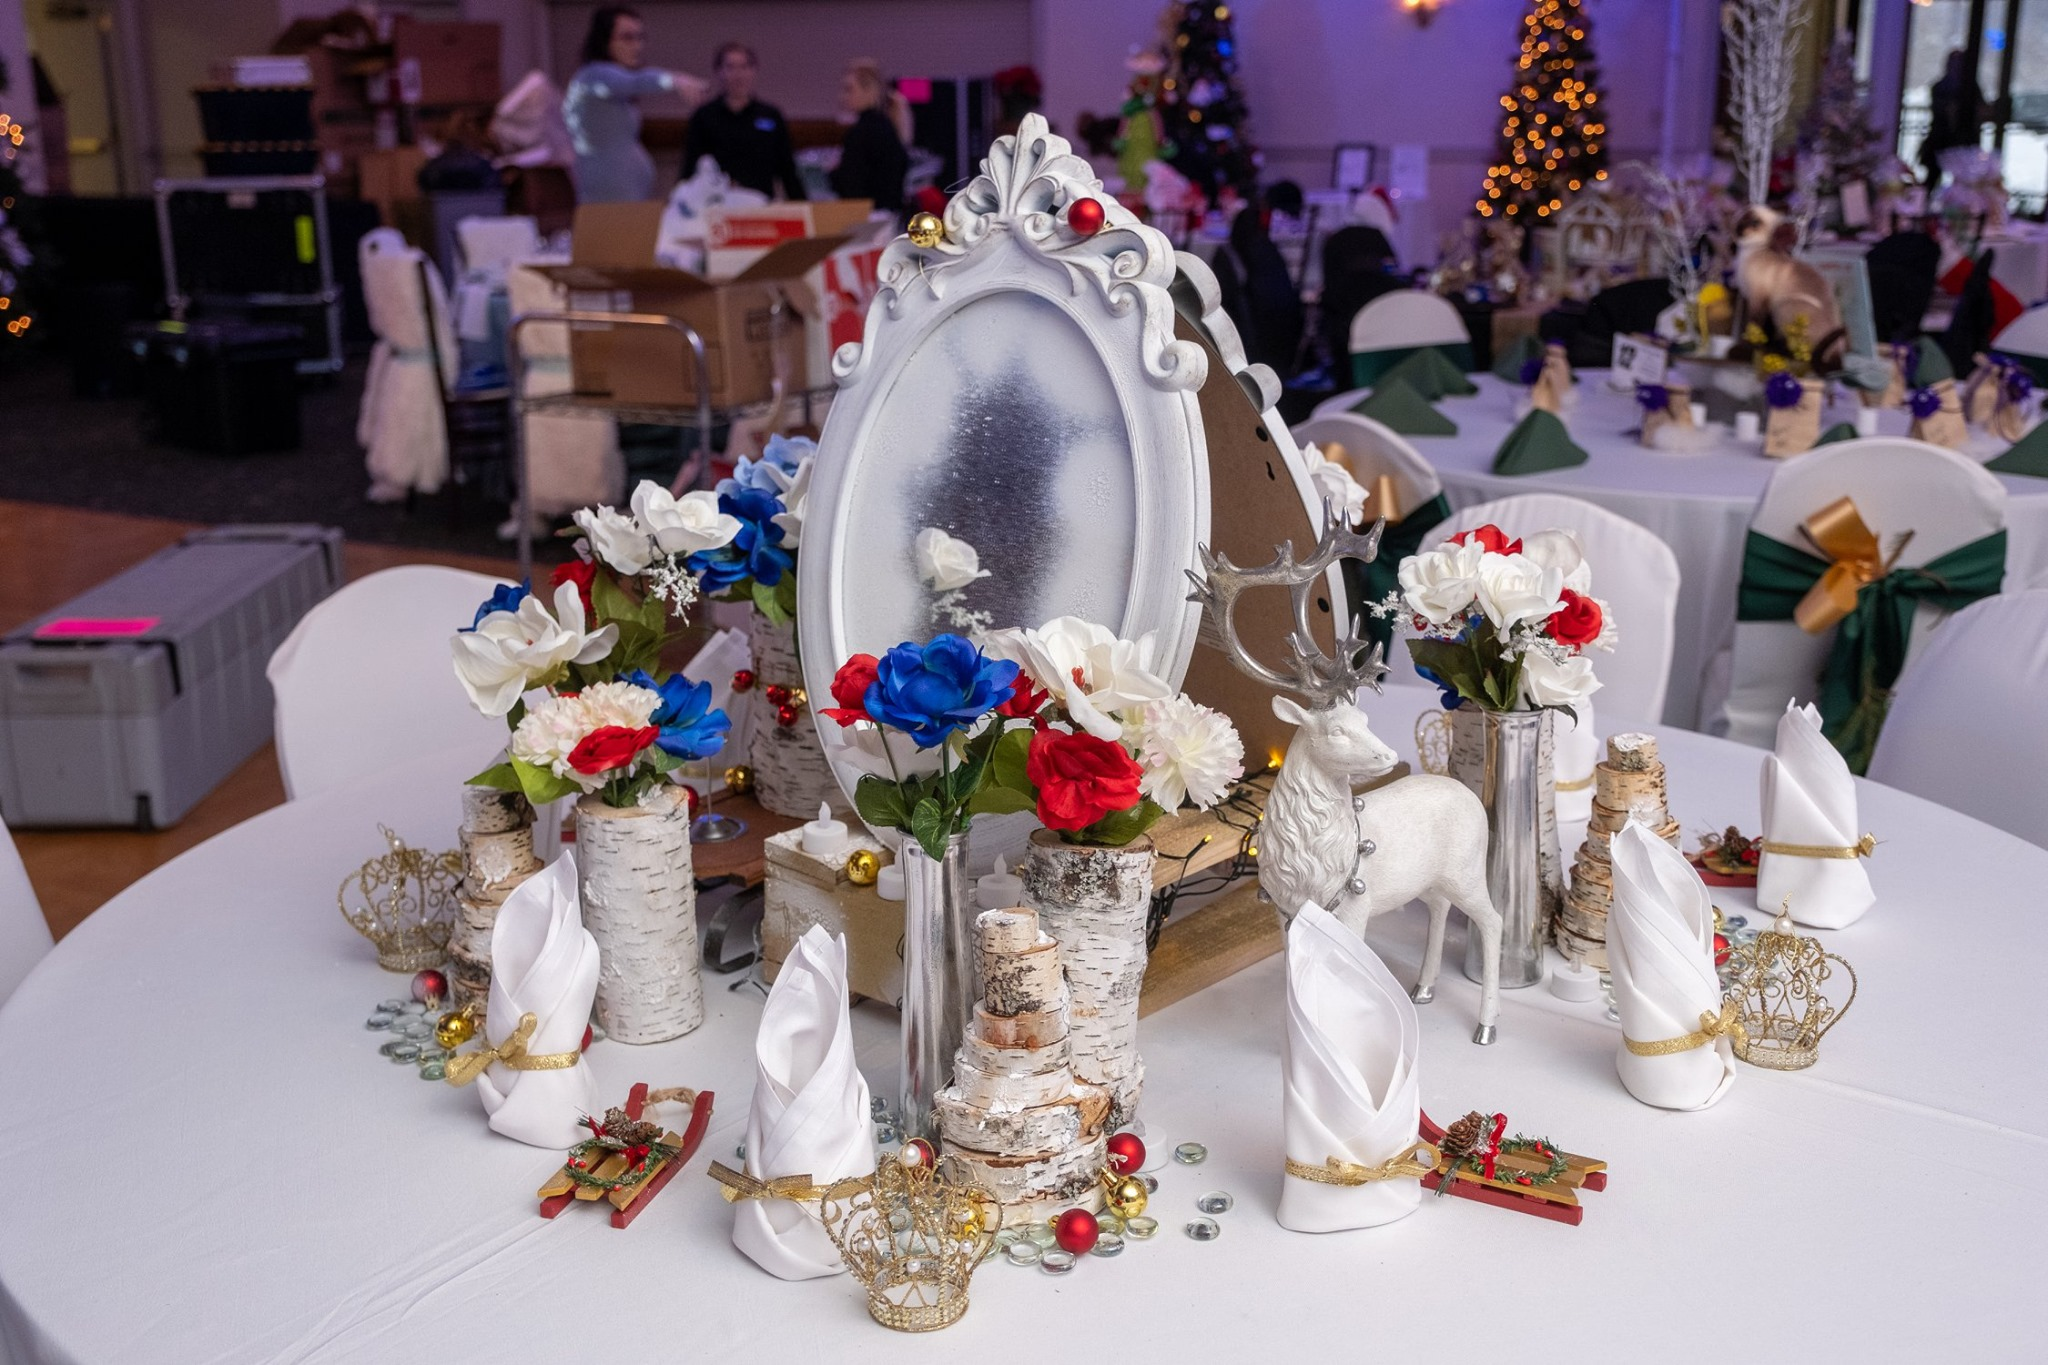 Storybook Snow Queen table